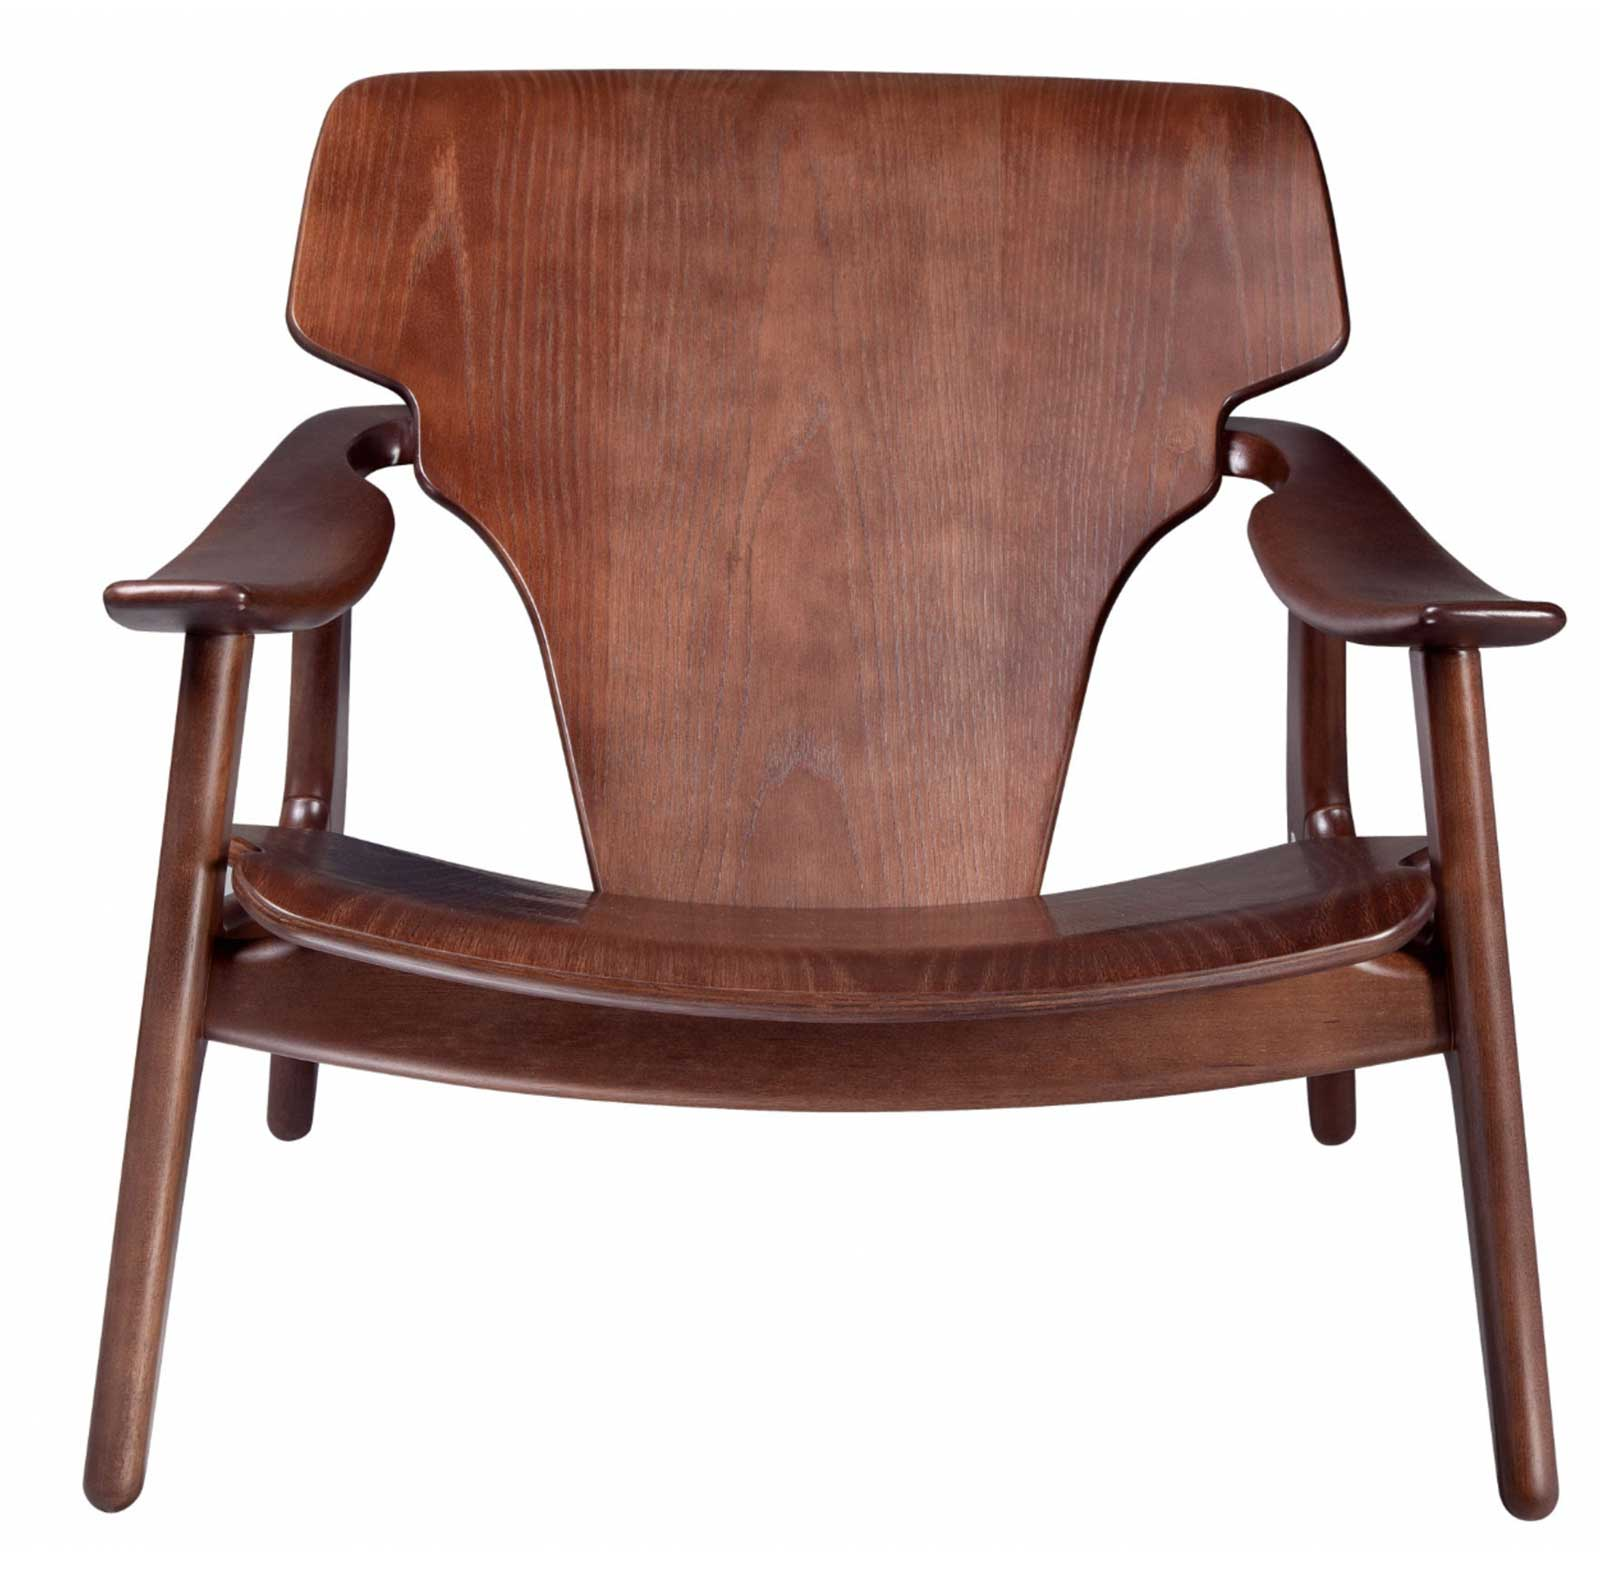 Diz Chair by Sergio Rodrigues  sc 1 st  Wood-Furniture.biz & Diz Chair by Sergio Rodrigues @ Wood-Furniture.biz